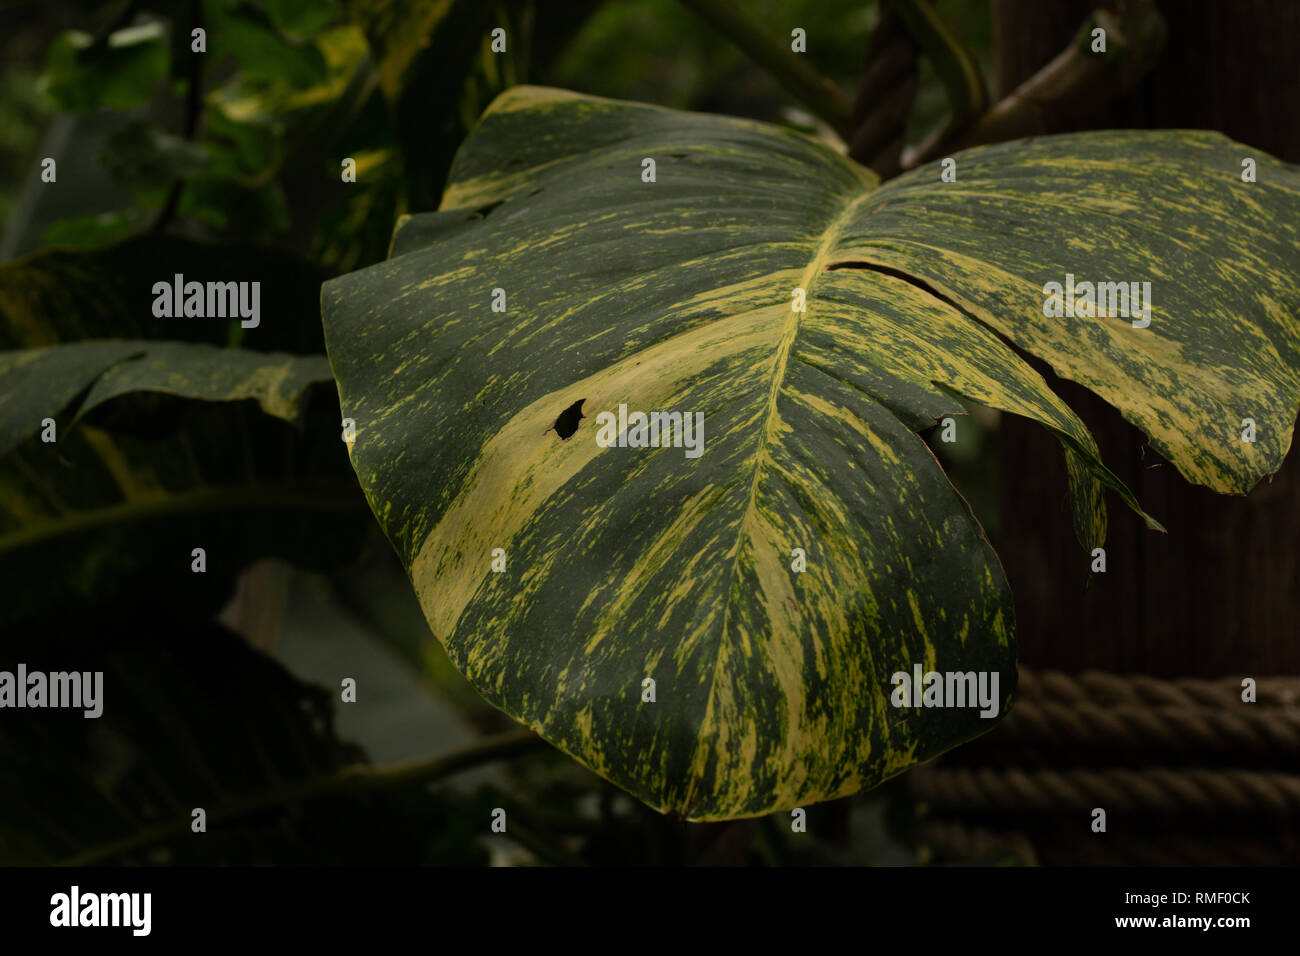 Focus On Large Rich Green Fan Leaf In Jungle Setting - Stock Image